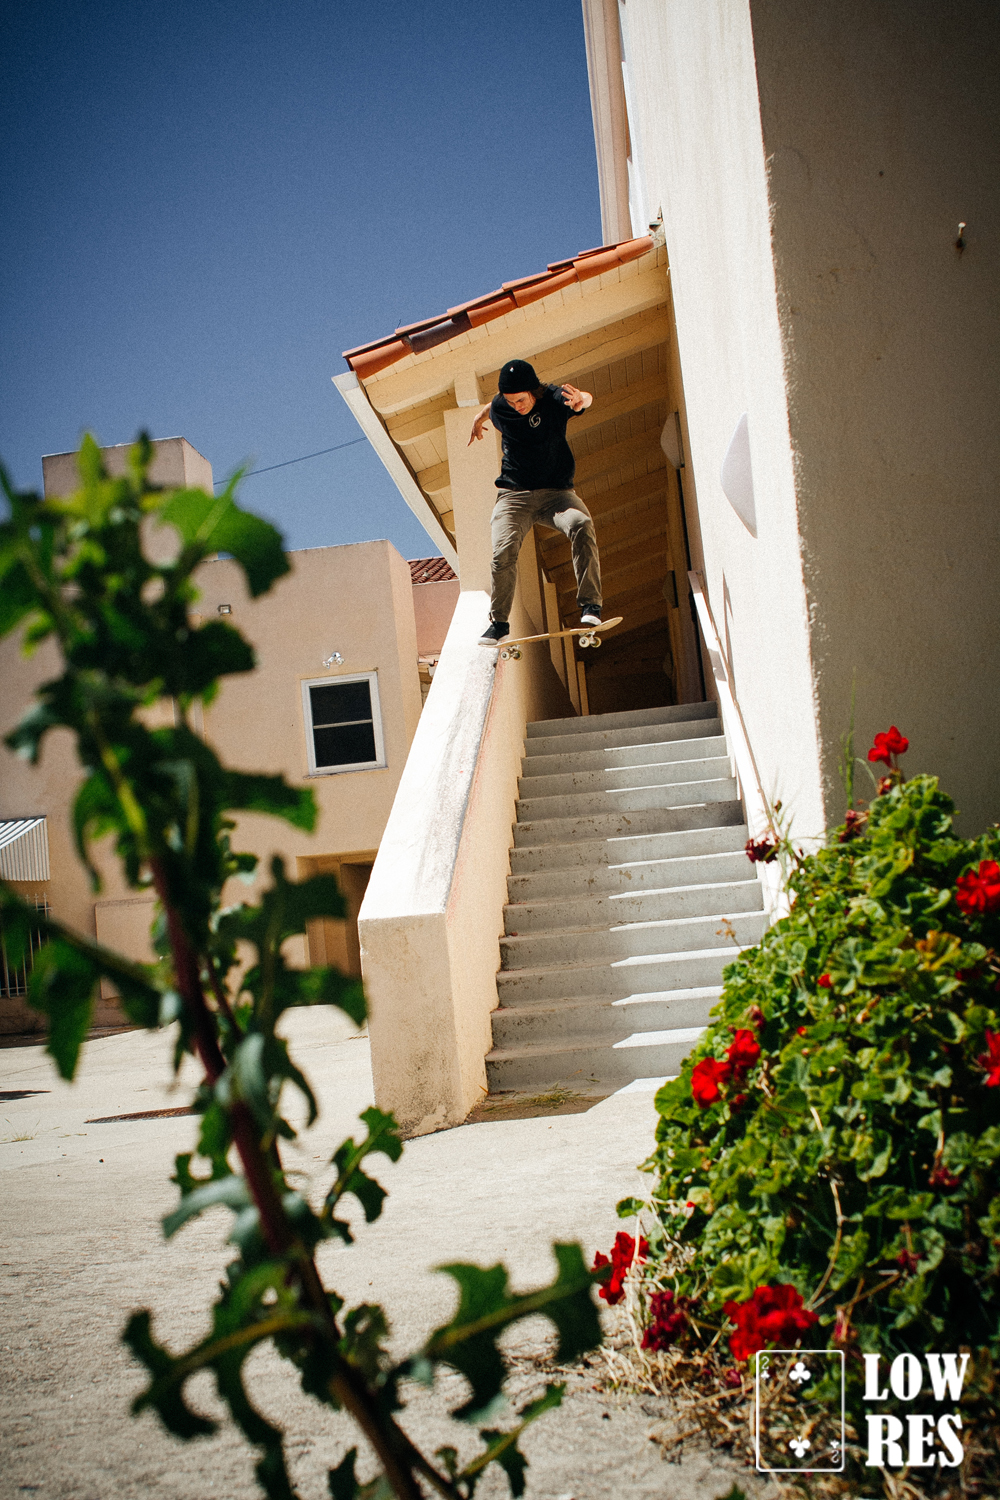 Alex Willms - Tailslide - Tosh Rice